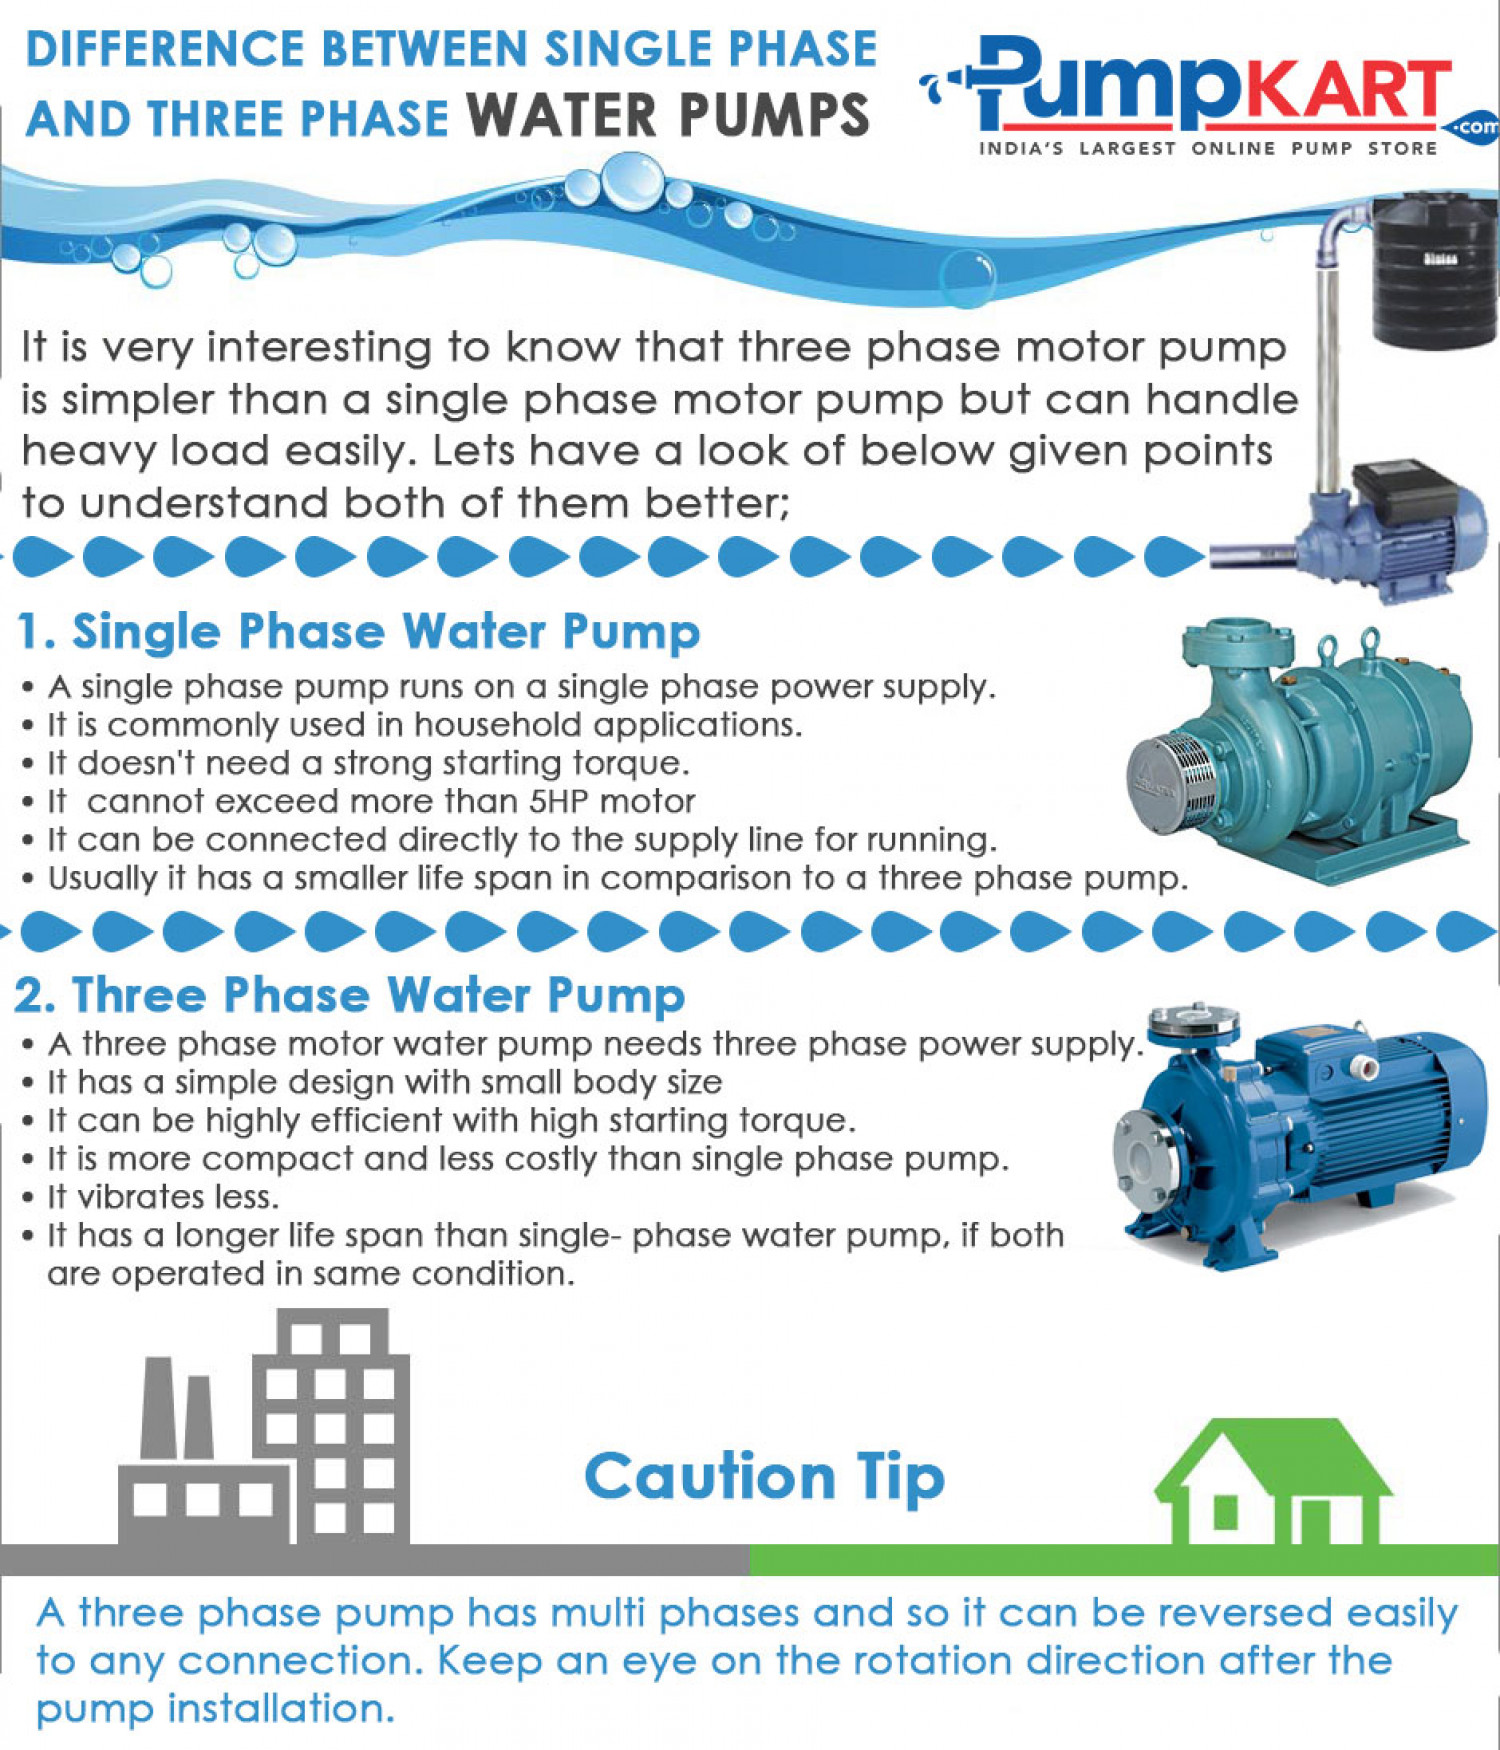 difference between single phase and three phase water